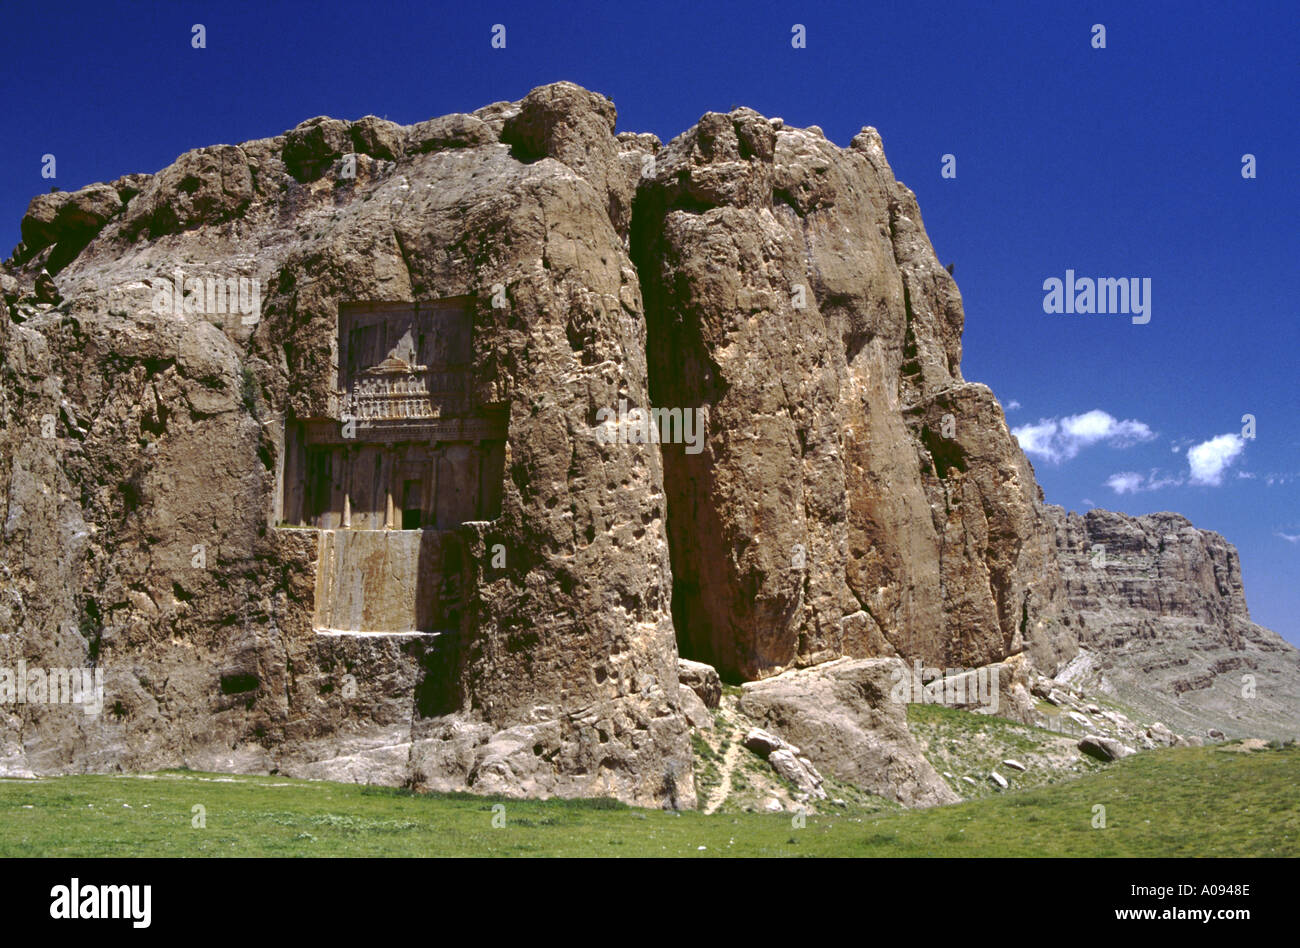 Iran Naqsh e Rostam stone reliefs at the tomb of the archaemenian king Xerxes I - Stock Image